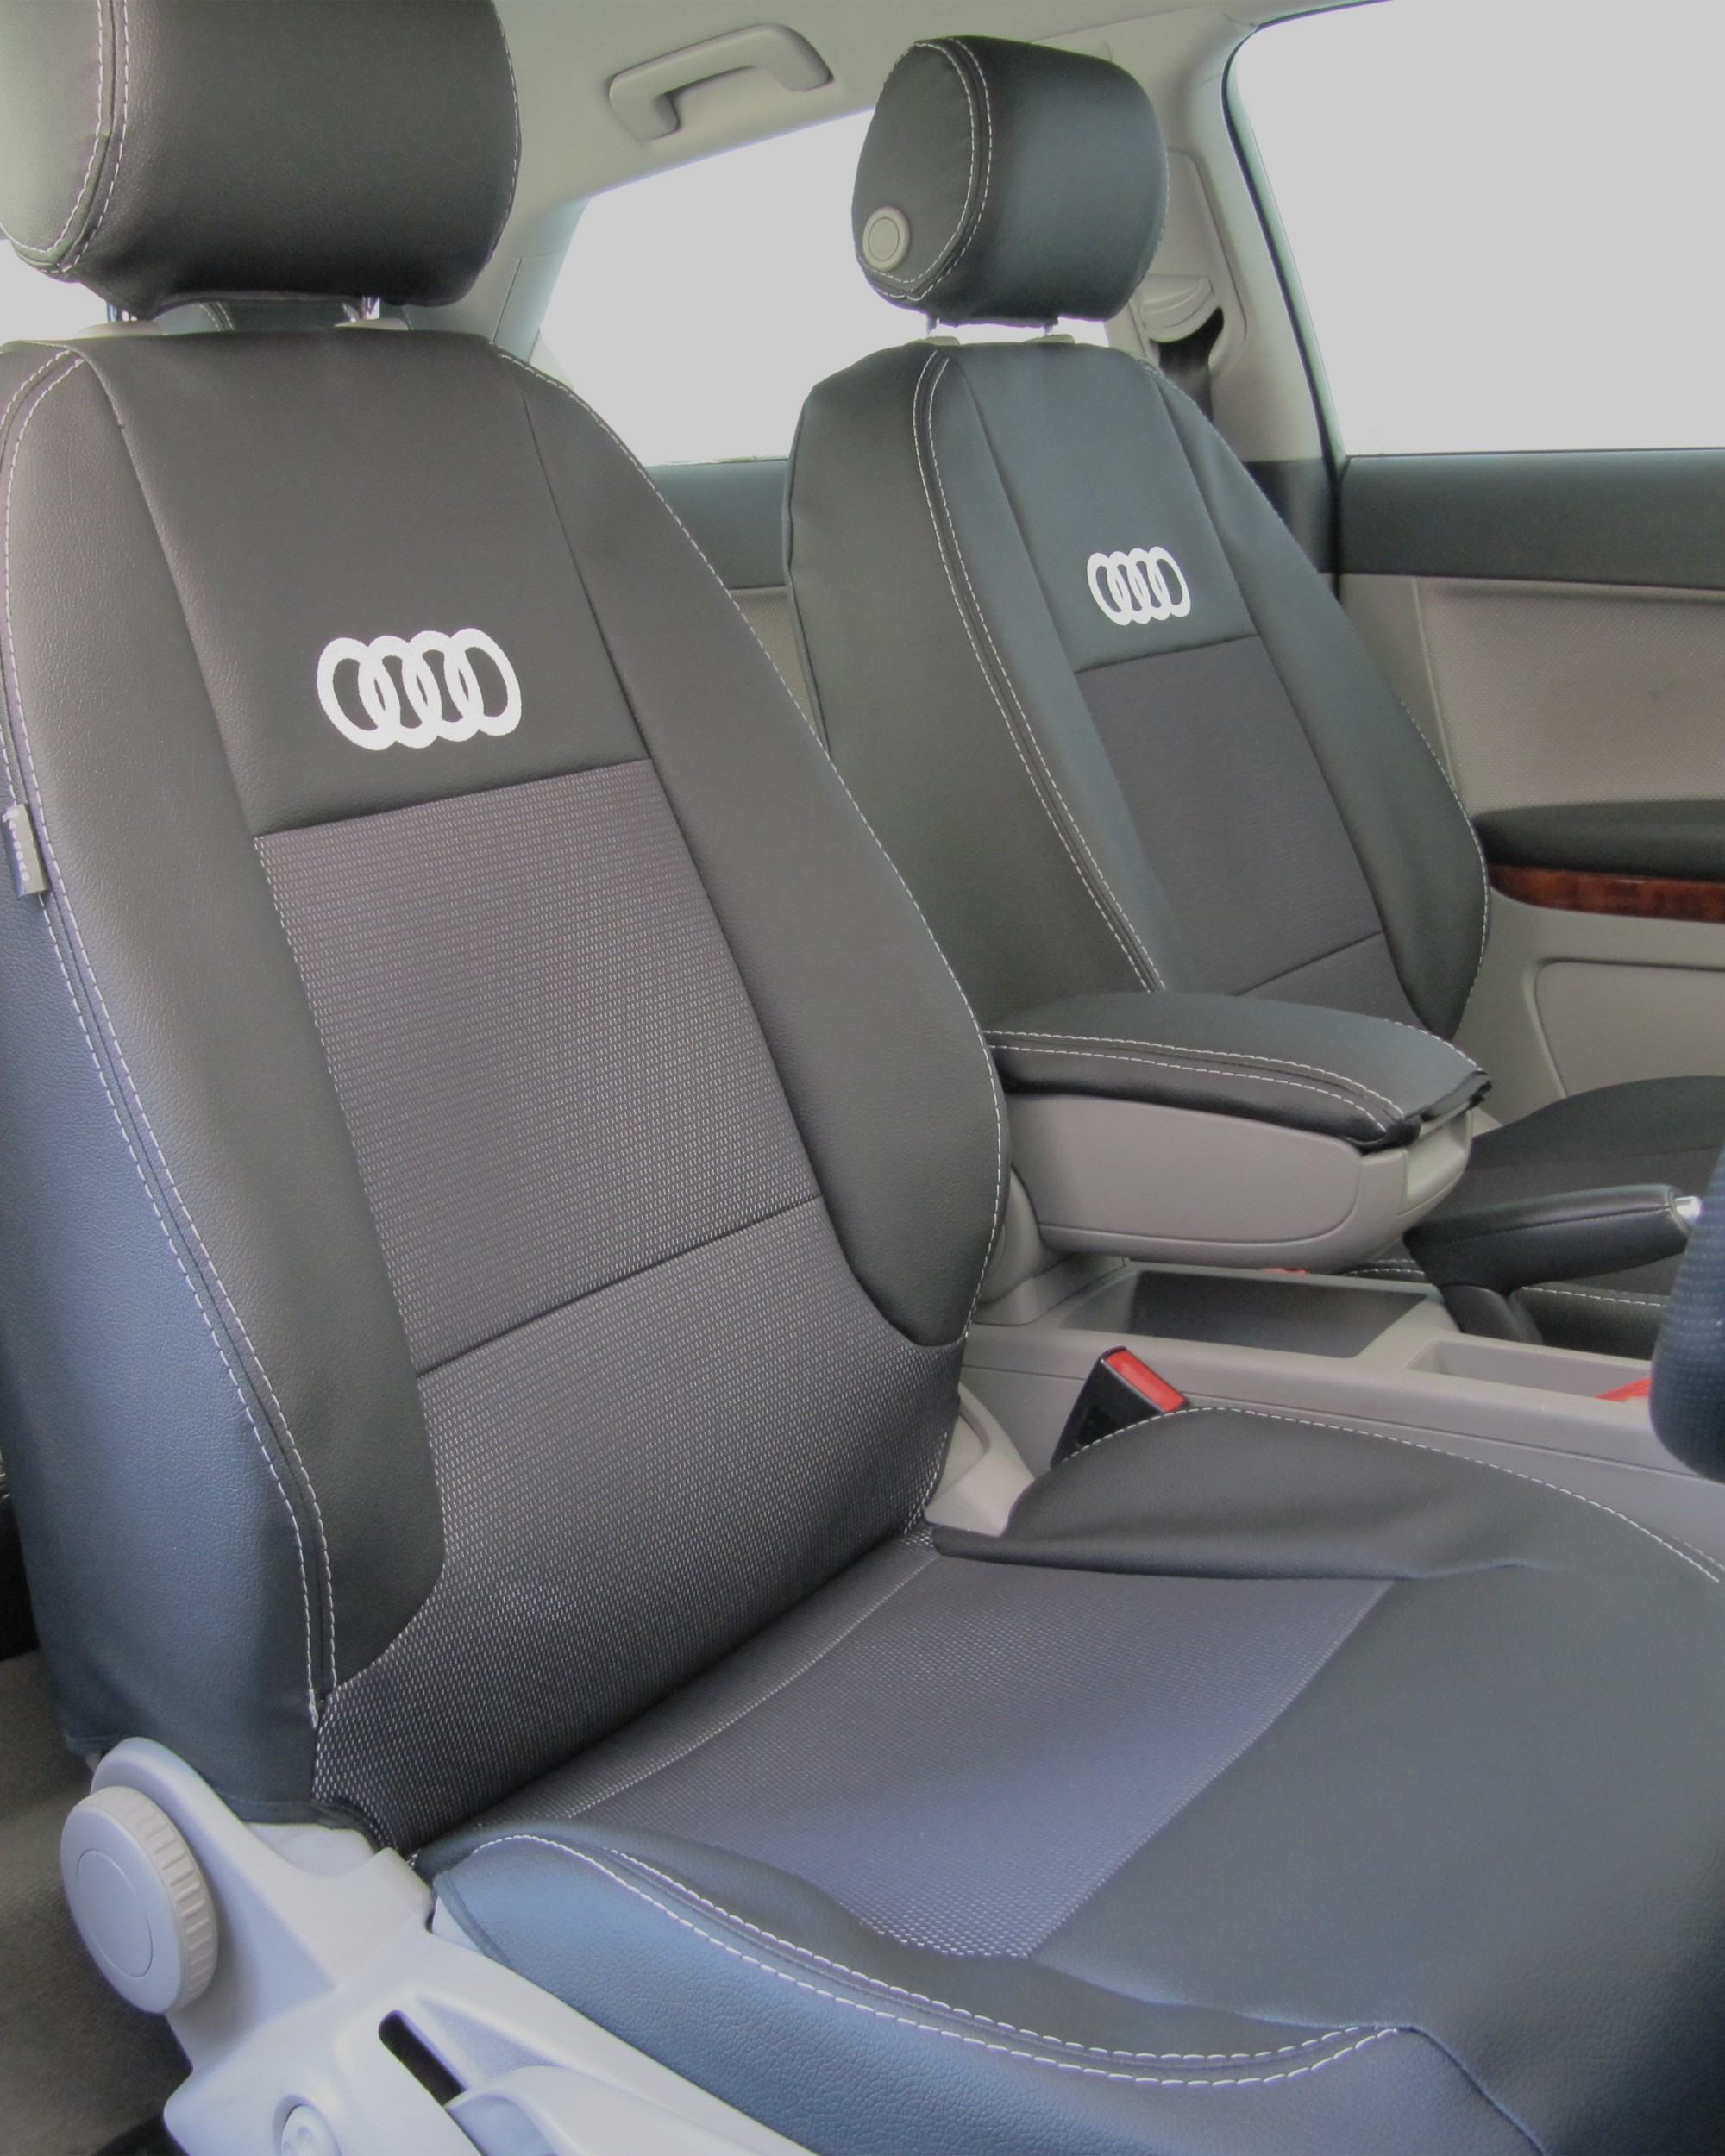 Audi A3 Seat Covers - Black  - 1st Generation